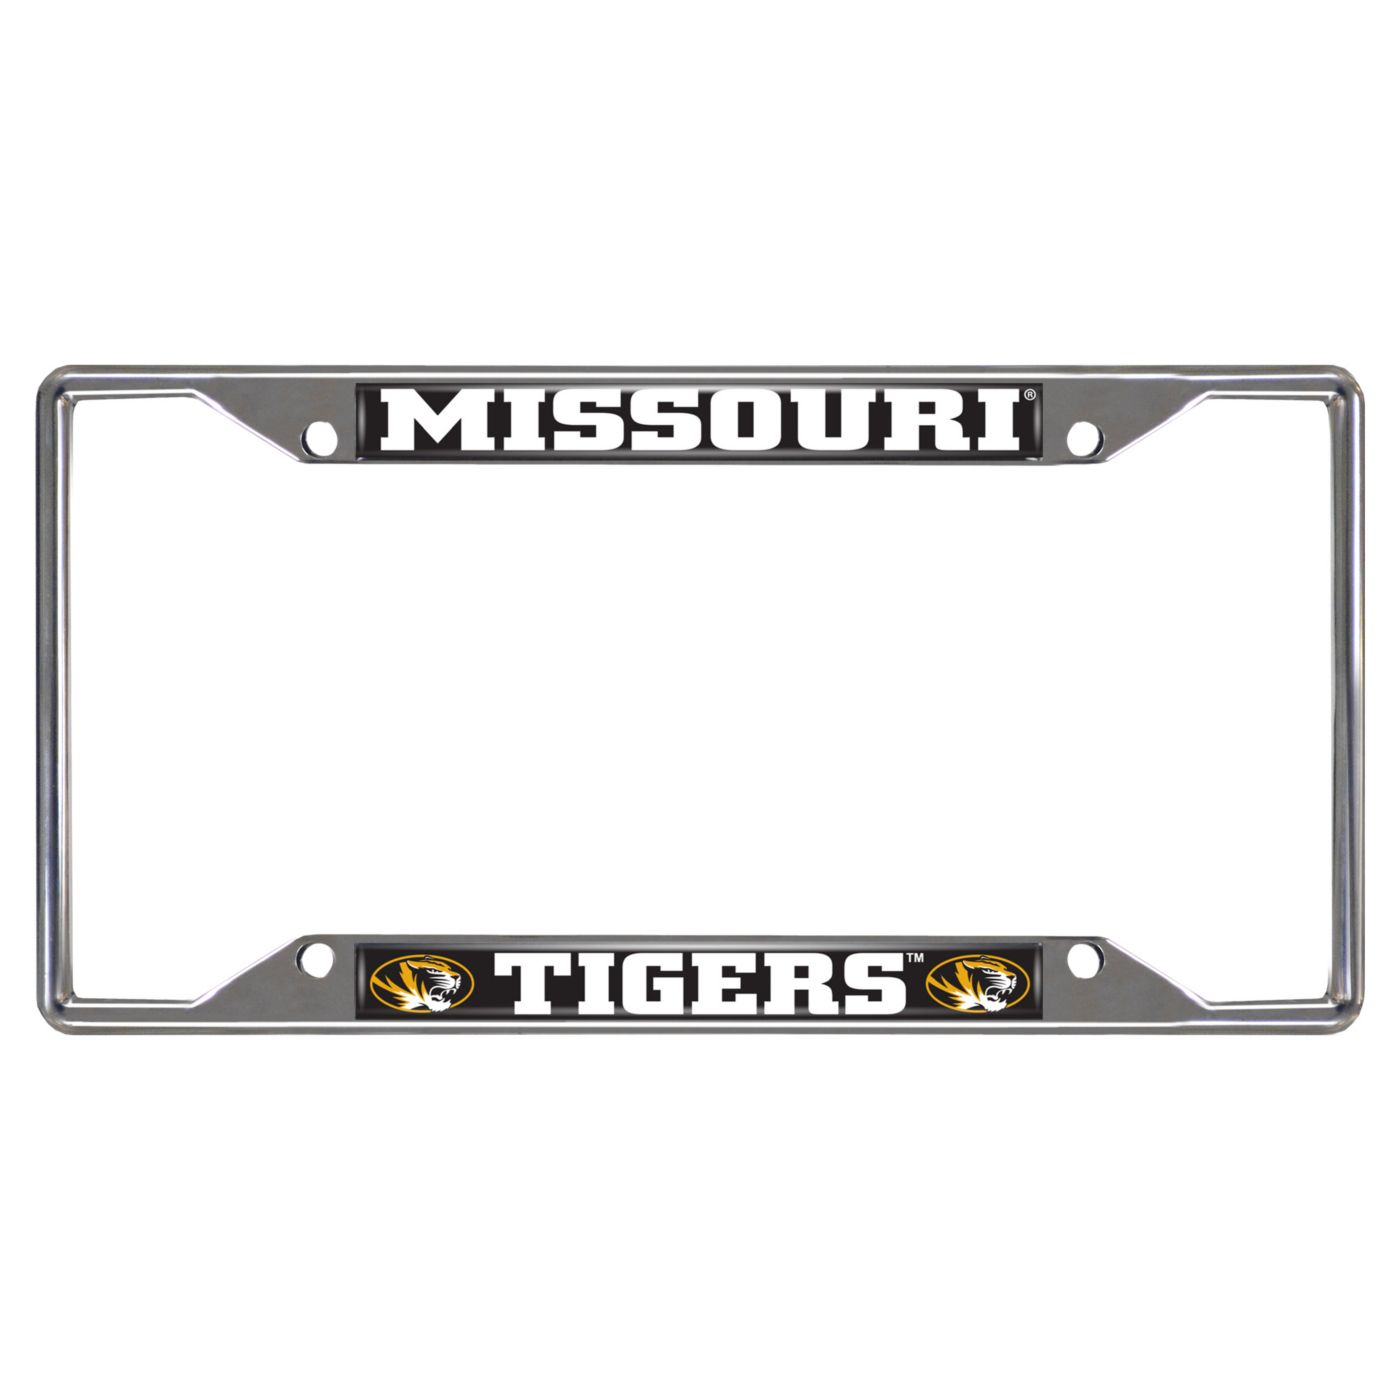 FANMATS Missouri Tigers License Plate Frame